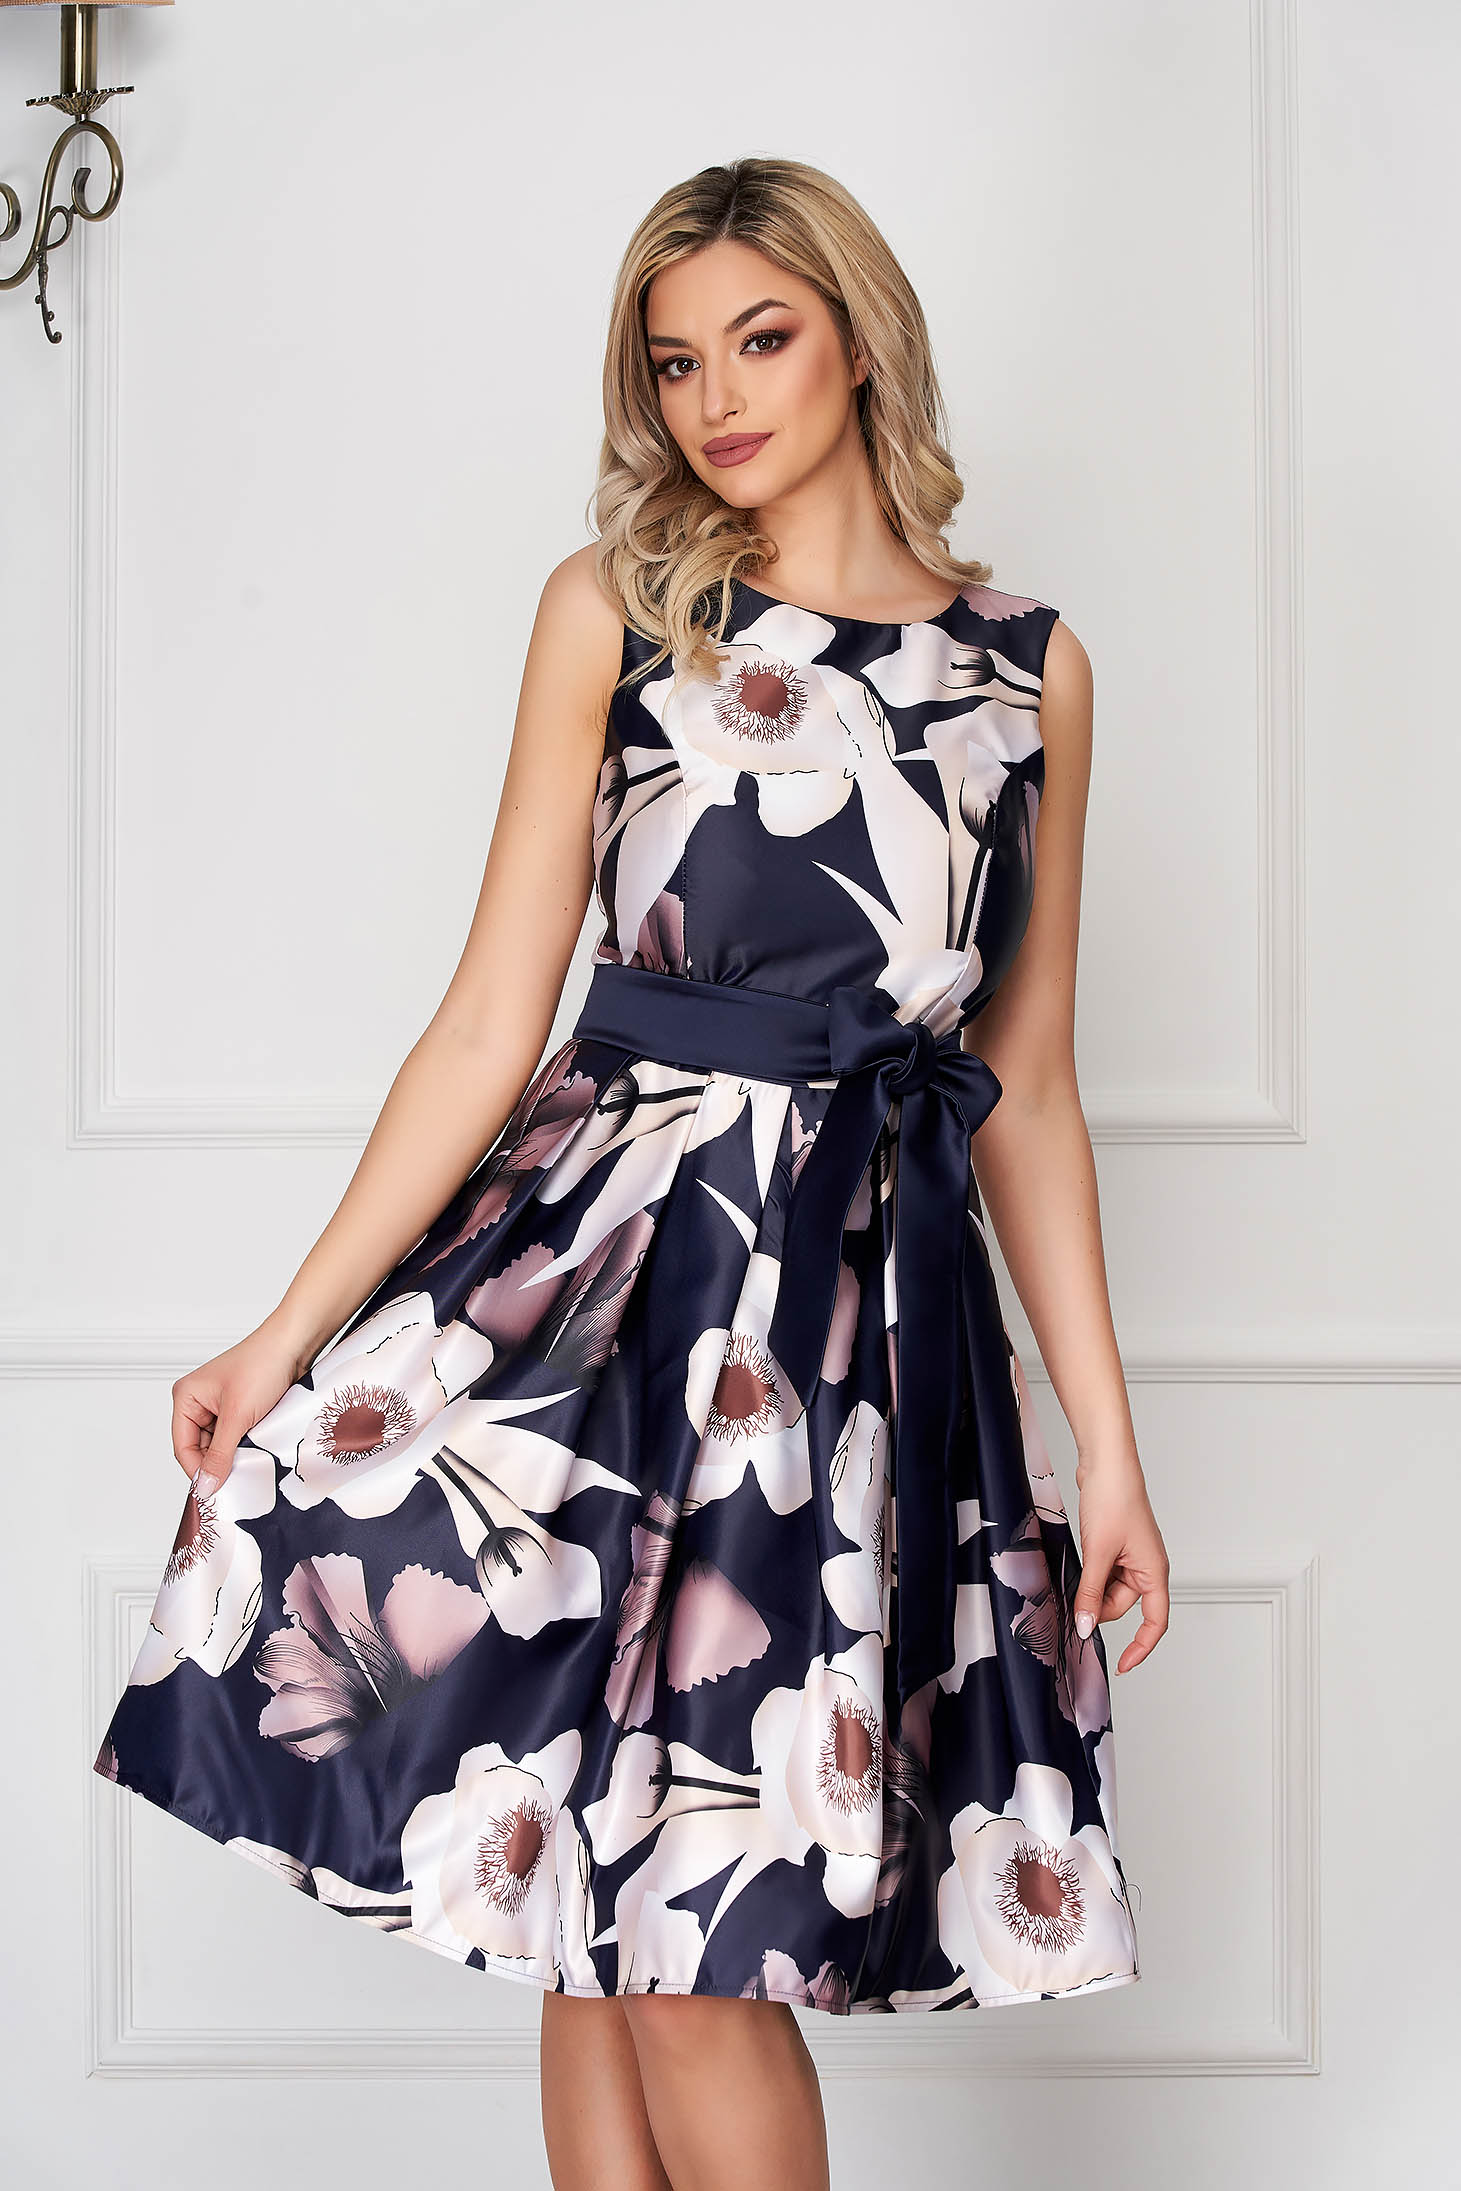 Cappuccino dress occasional cloche from satin sleeveless accessorized with tied waistband midi